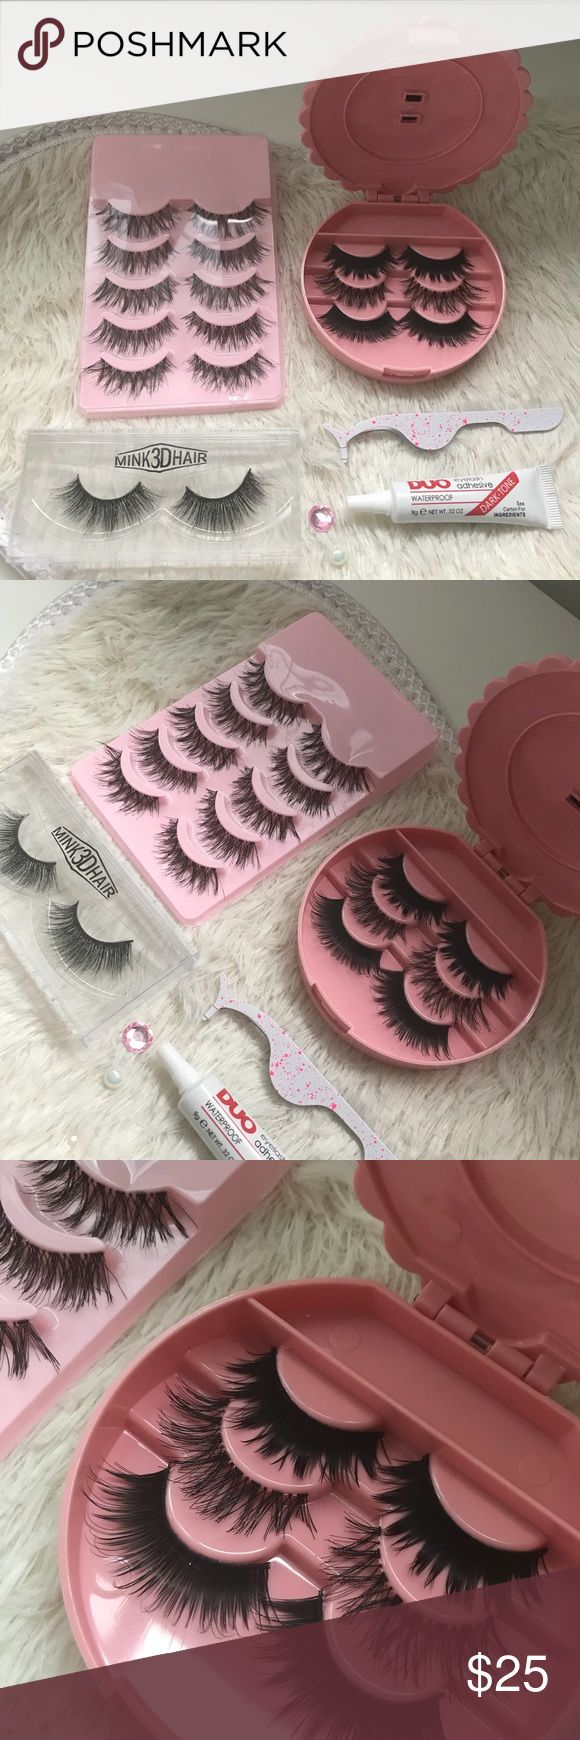 Wispy Eyelashes set ⭐️1 Premium Mink Eyelashes  ⭐️5 Pairs of wispy Lashes ⭐️3 kinds of wispy lashes  ⭐️applicator ⭐️Duo Glue  ⭐️Eyelash Case ( all colors available)   # tags wispies, Demi , makeup, Iconic, mink, red cherry eyelashes, house of lashes, doll, kawaii, case, full, natural,  Koko, Ardell, wispies, Demi , makeup, mascara, eyelash applicator, Mykonos Mink , Lashes , wispy ,eyelash case, mink lashes  Ship within 24 hours ❣️ PRICE IS FIRM Makeup False Eyelashes